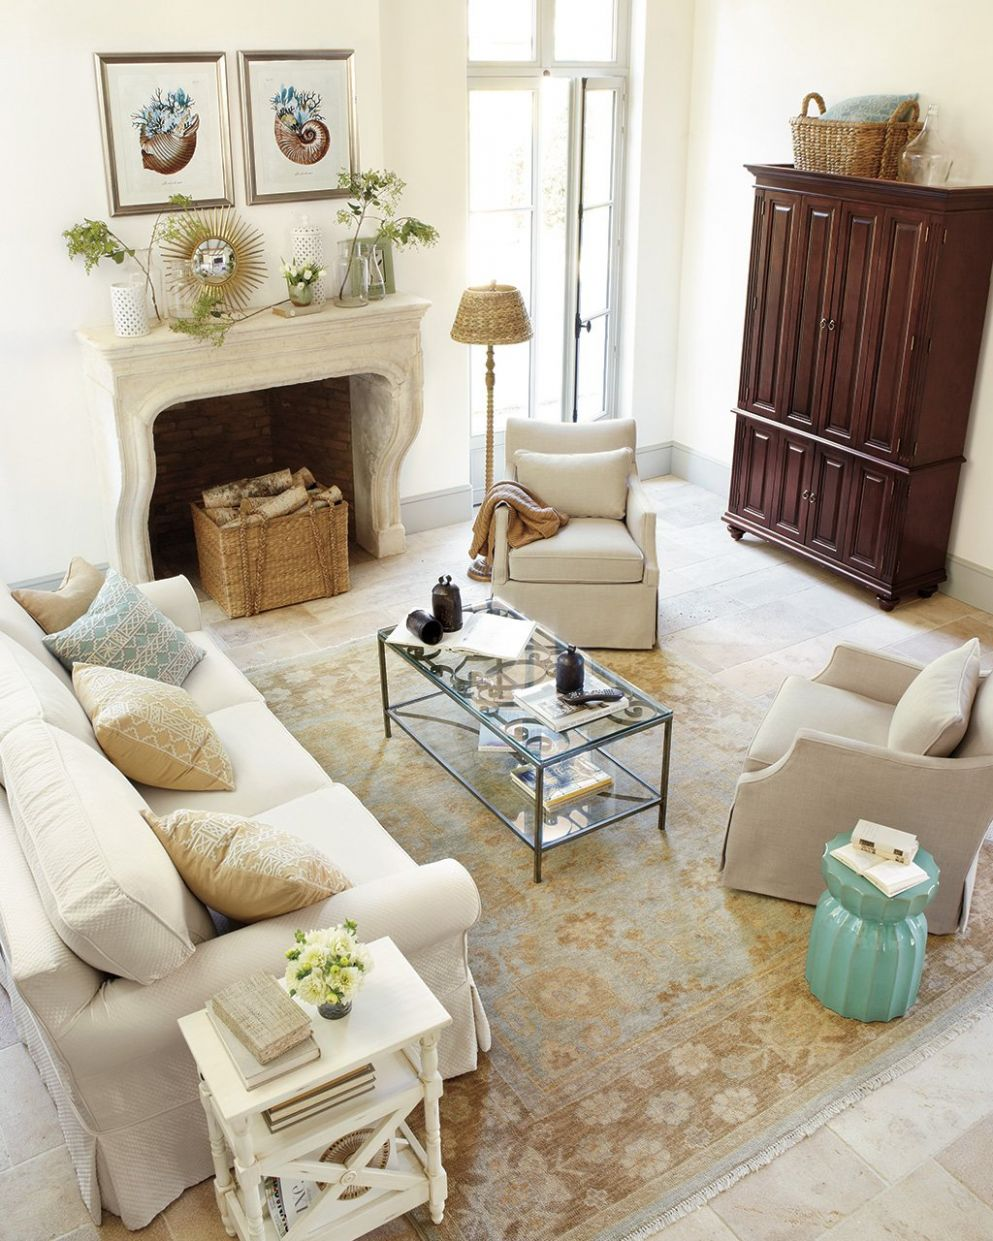 12 Ways to Layout Your Living Room | How to Decorate - living room ideas with just chairs